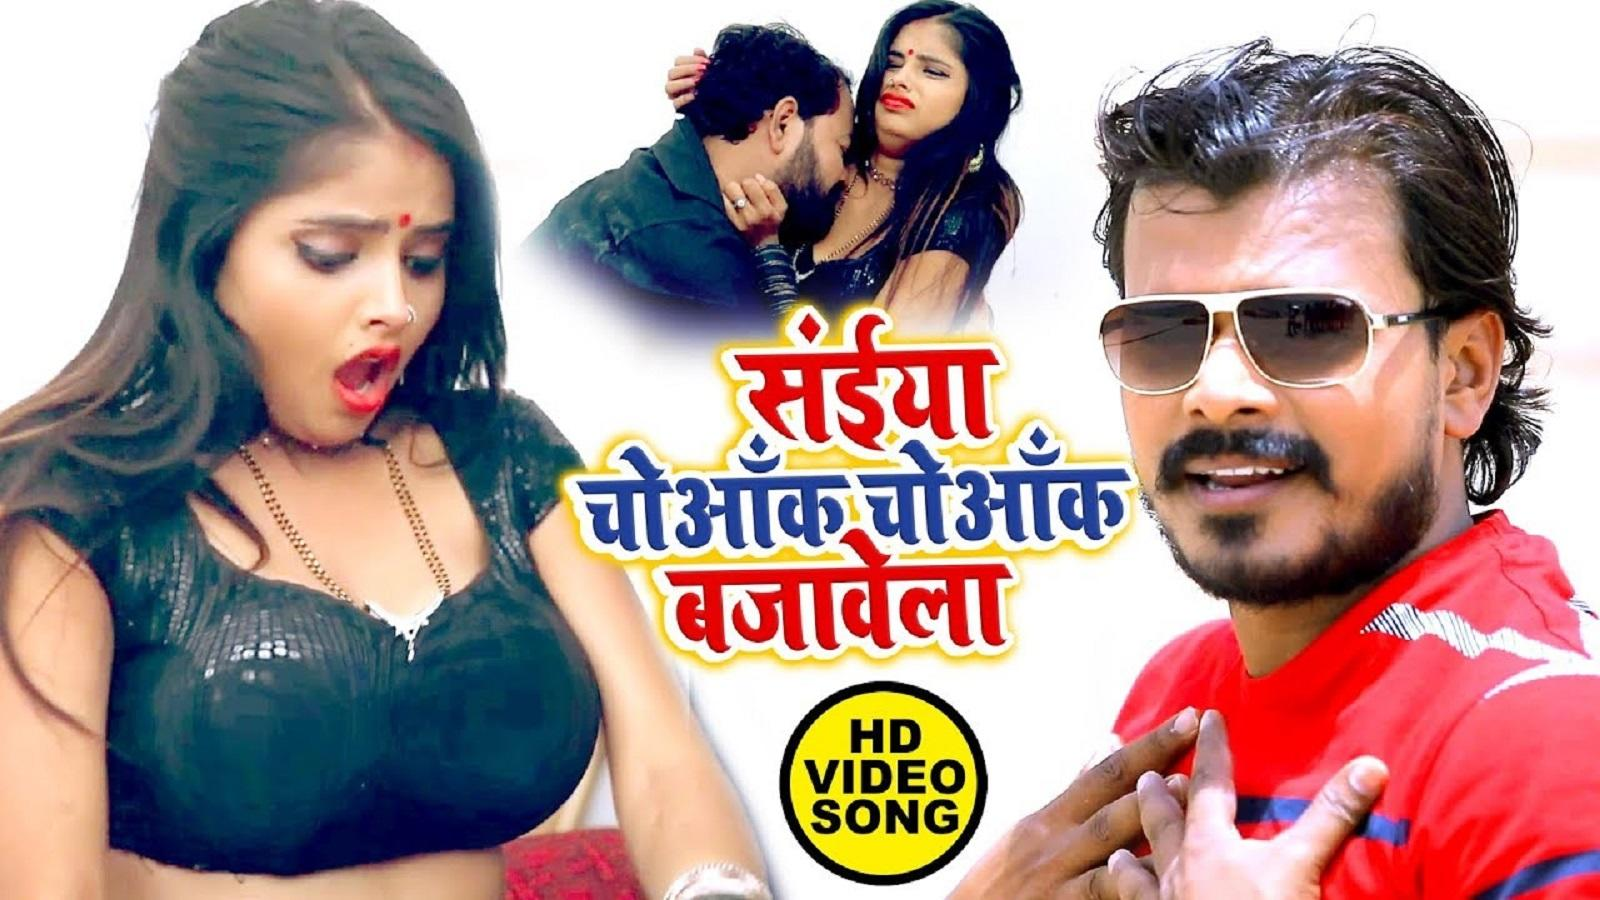 Child Pramod Premi Latest Bhojpuri Sexy Video Song 39;saiya Choank Choank